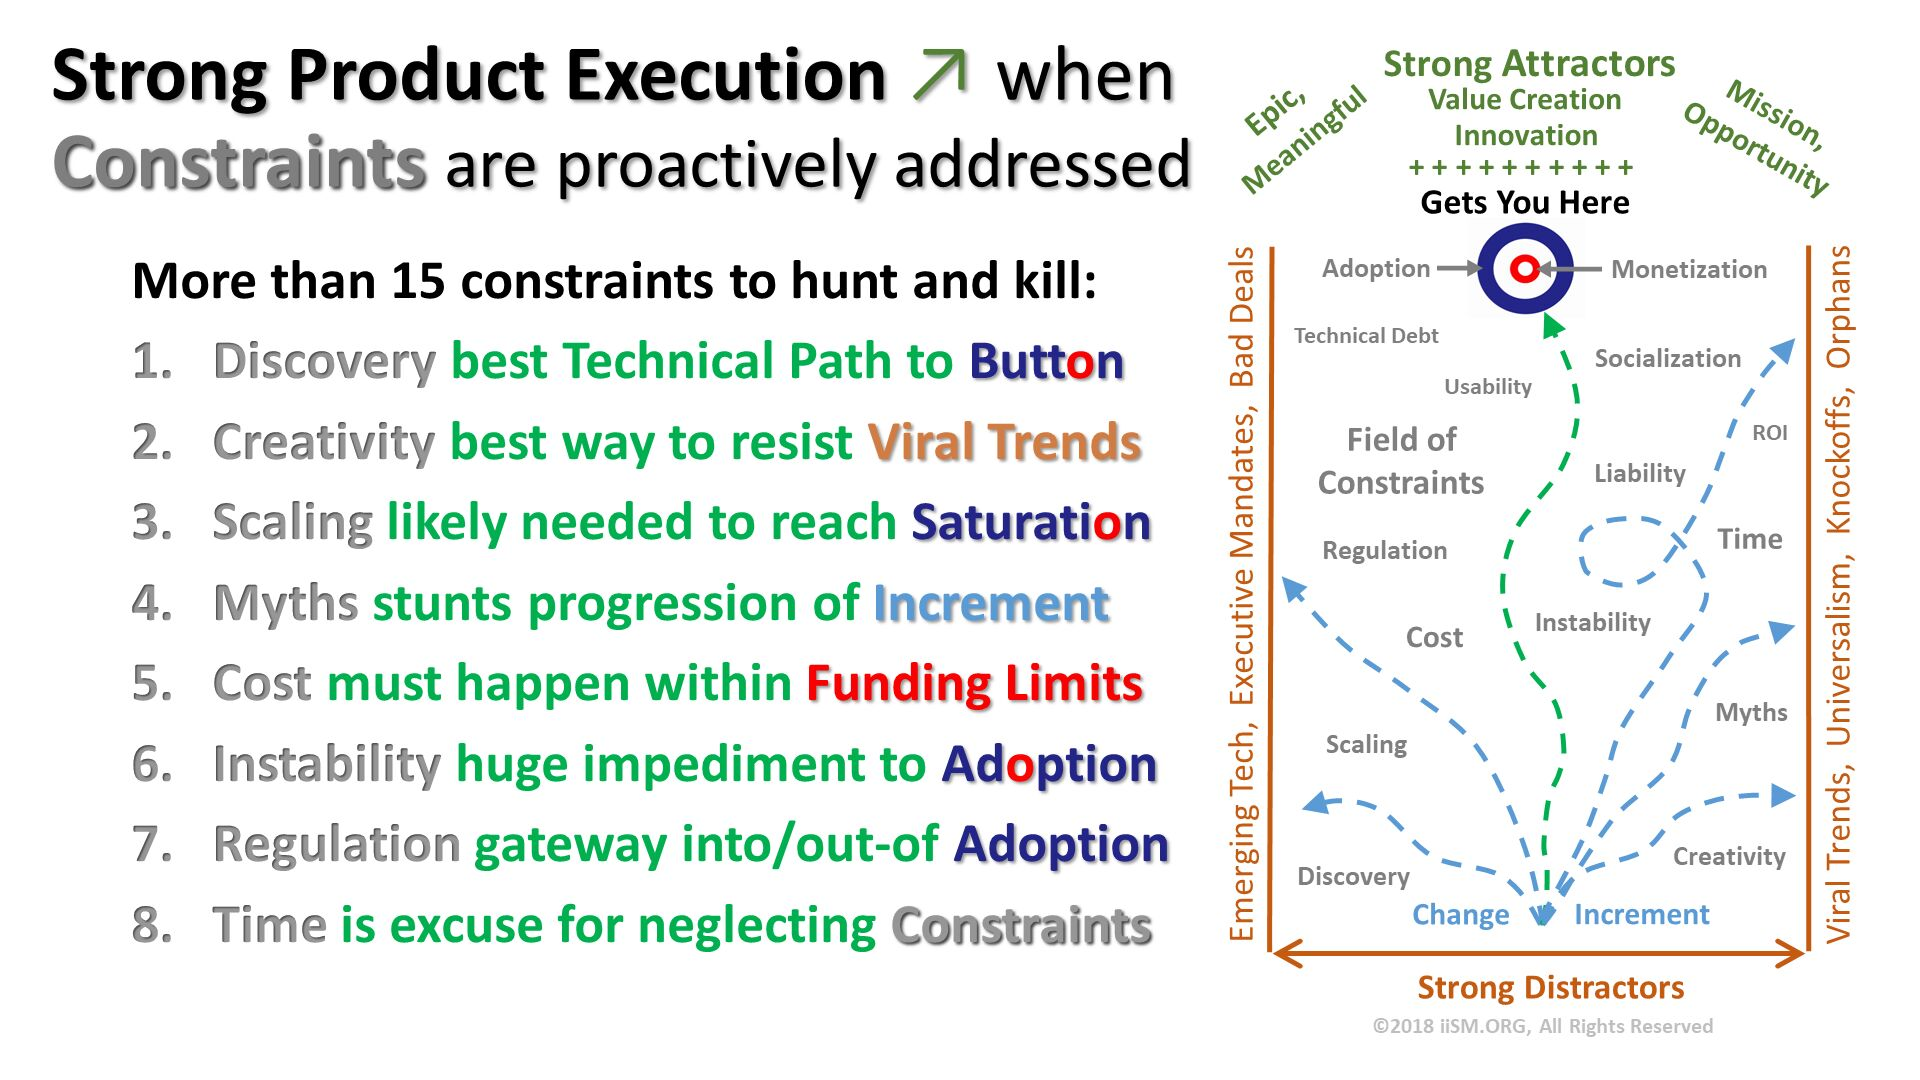 Strong Product Execution ↗ whenConstraints are proactively addressed. More than 15 constraints to hunt and kill: Discovery best Technical Path to Button Creativity best way to resist Viral Trends Scaling likely needed to reach Saturation  Myths stunts progression of Increment Cost must happen within Funding Limits Instability huge impediment to Adoption Regulation gateway into/out-of Adoption Time is excuse for neglecting Constraints    .